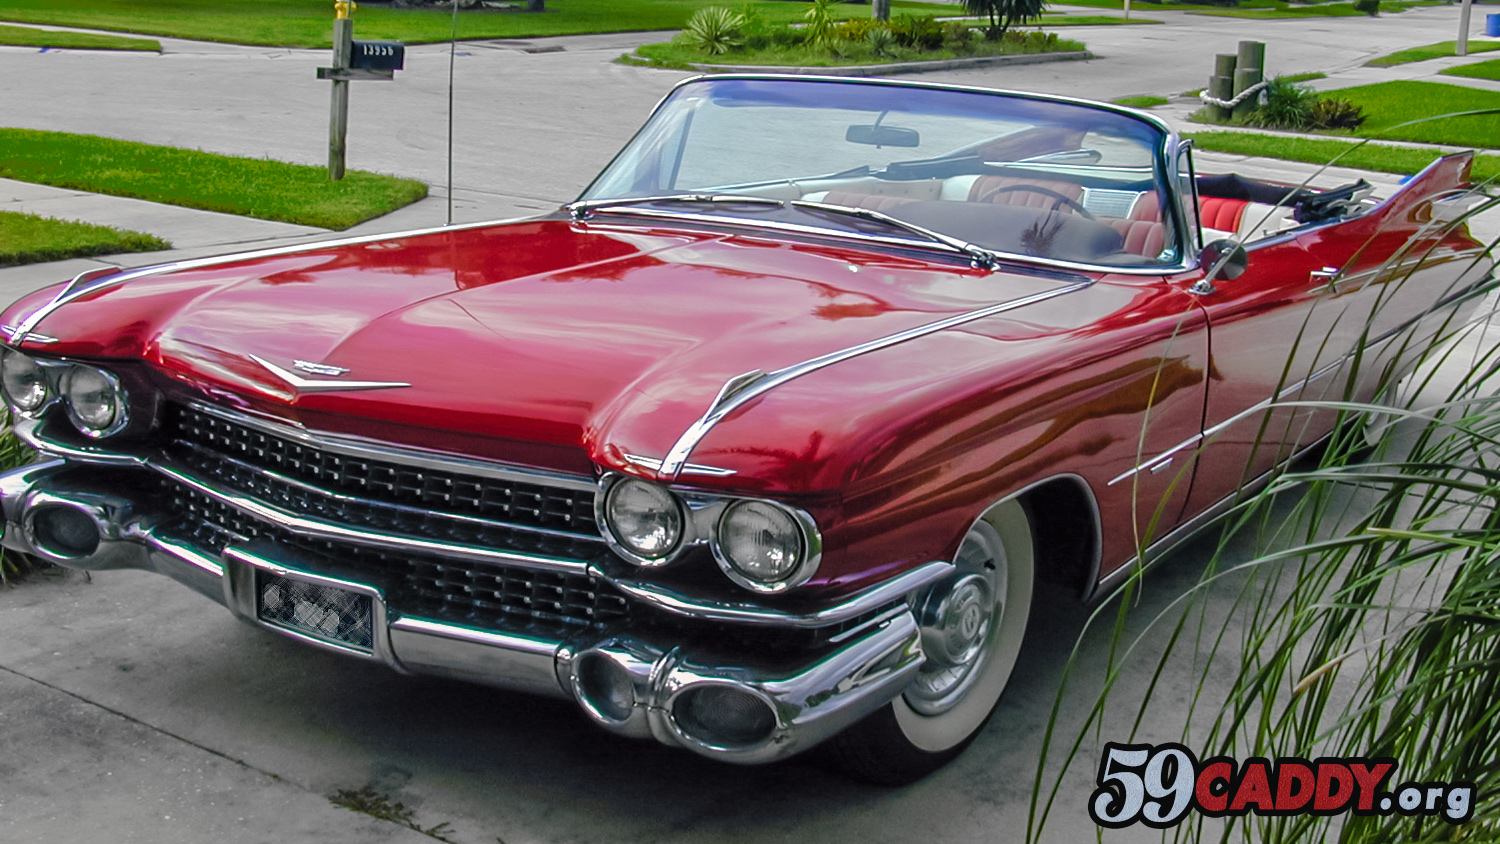 1959 Cadillac Convertible 59 Caddy clic cars 1959 Cadillac ...